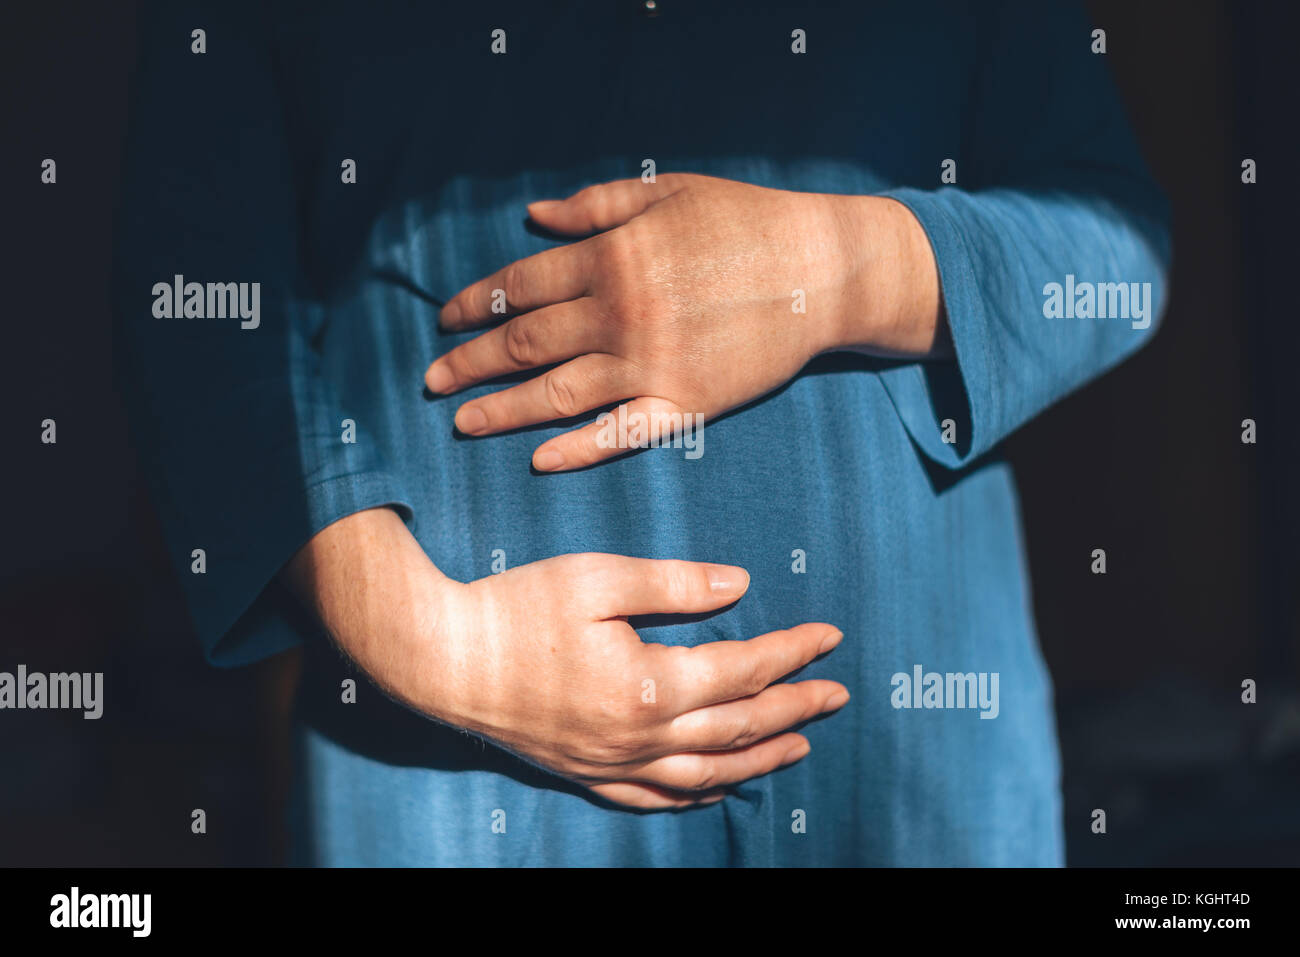 Gentle loving pregnant female with hands on her belly in third trimester of pregnancy expecting newborn baby - Stock Image